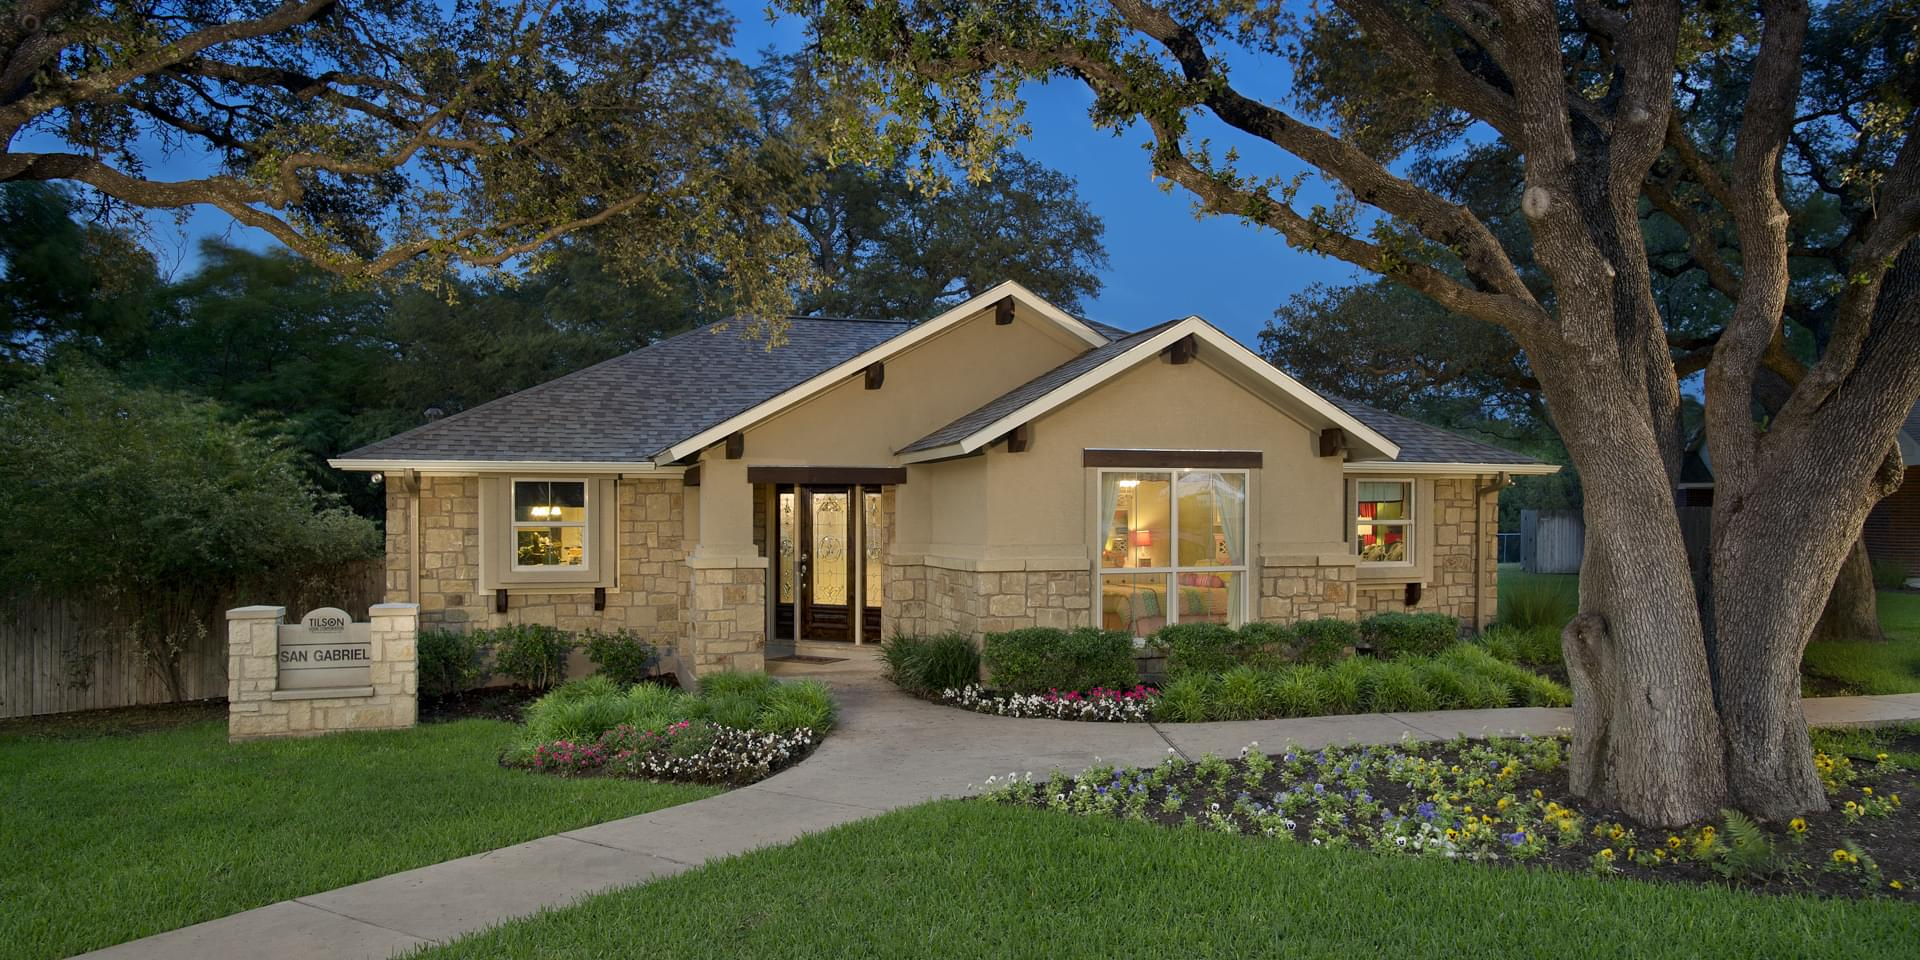 The San Gabriel Custom Home Plan from Tilson Homes